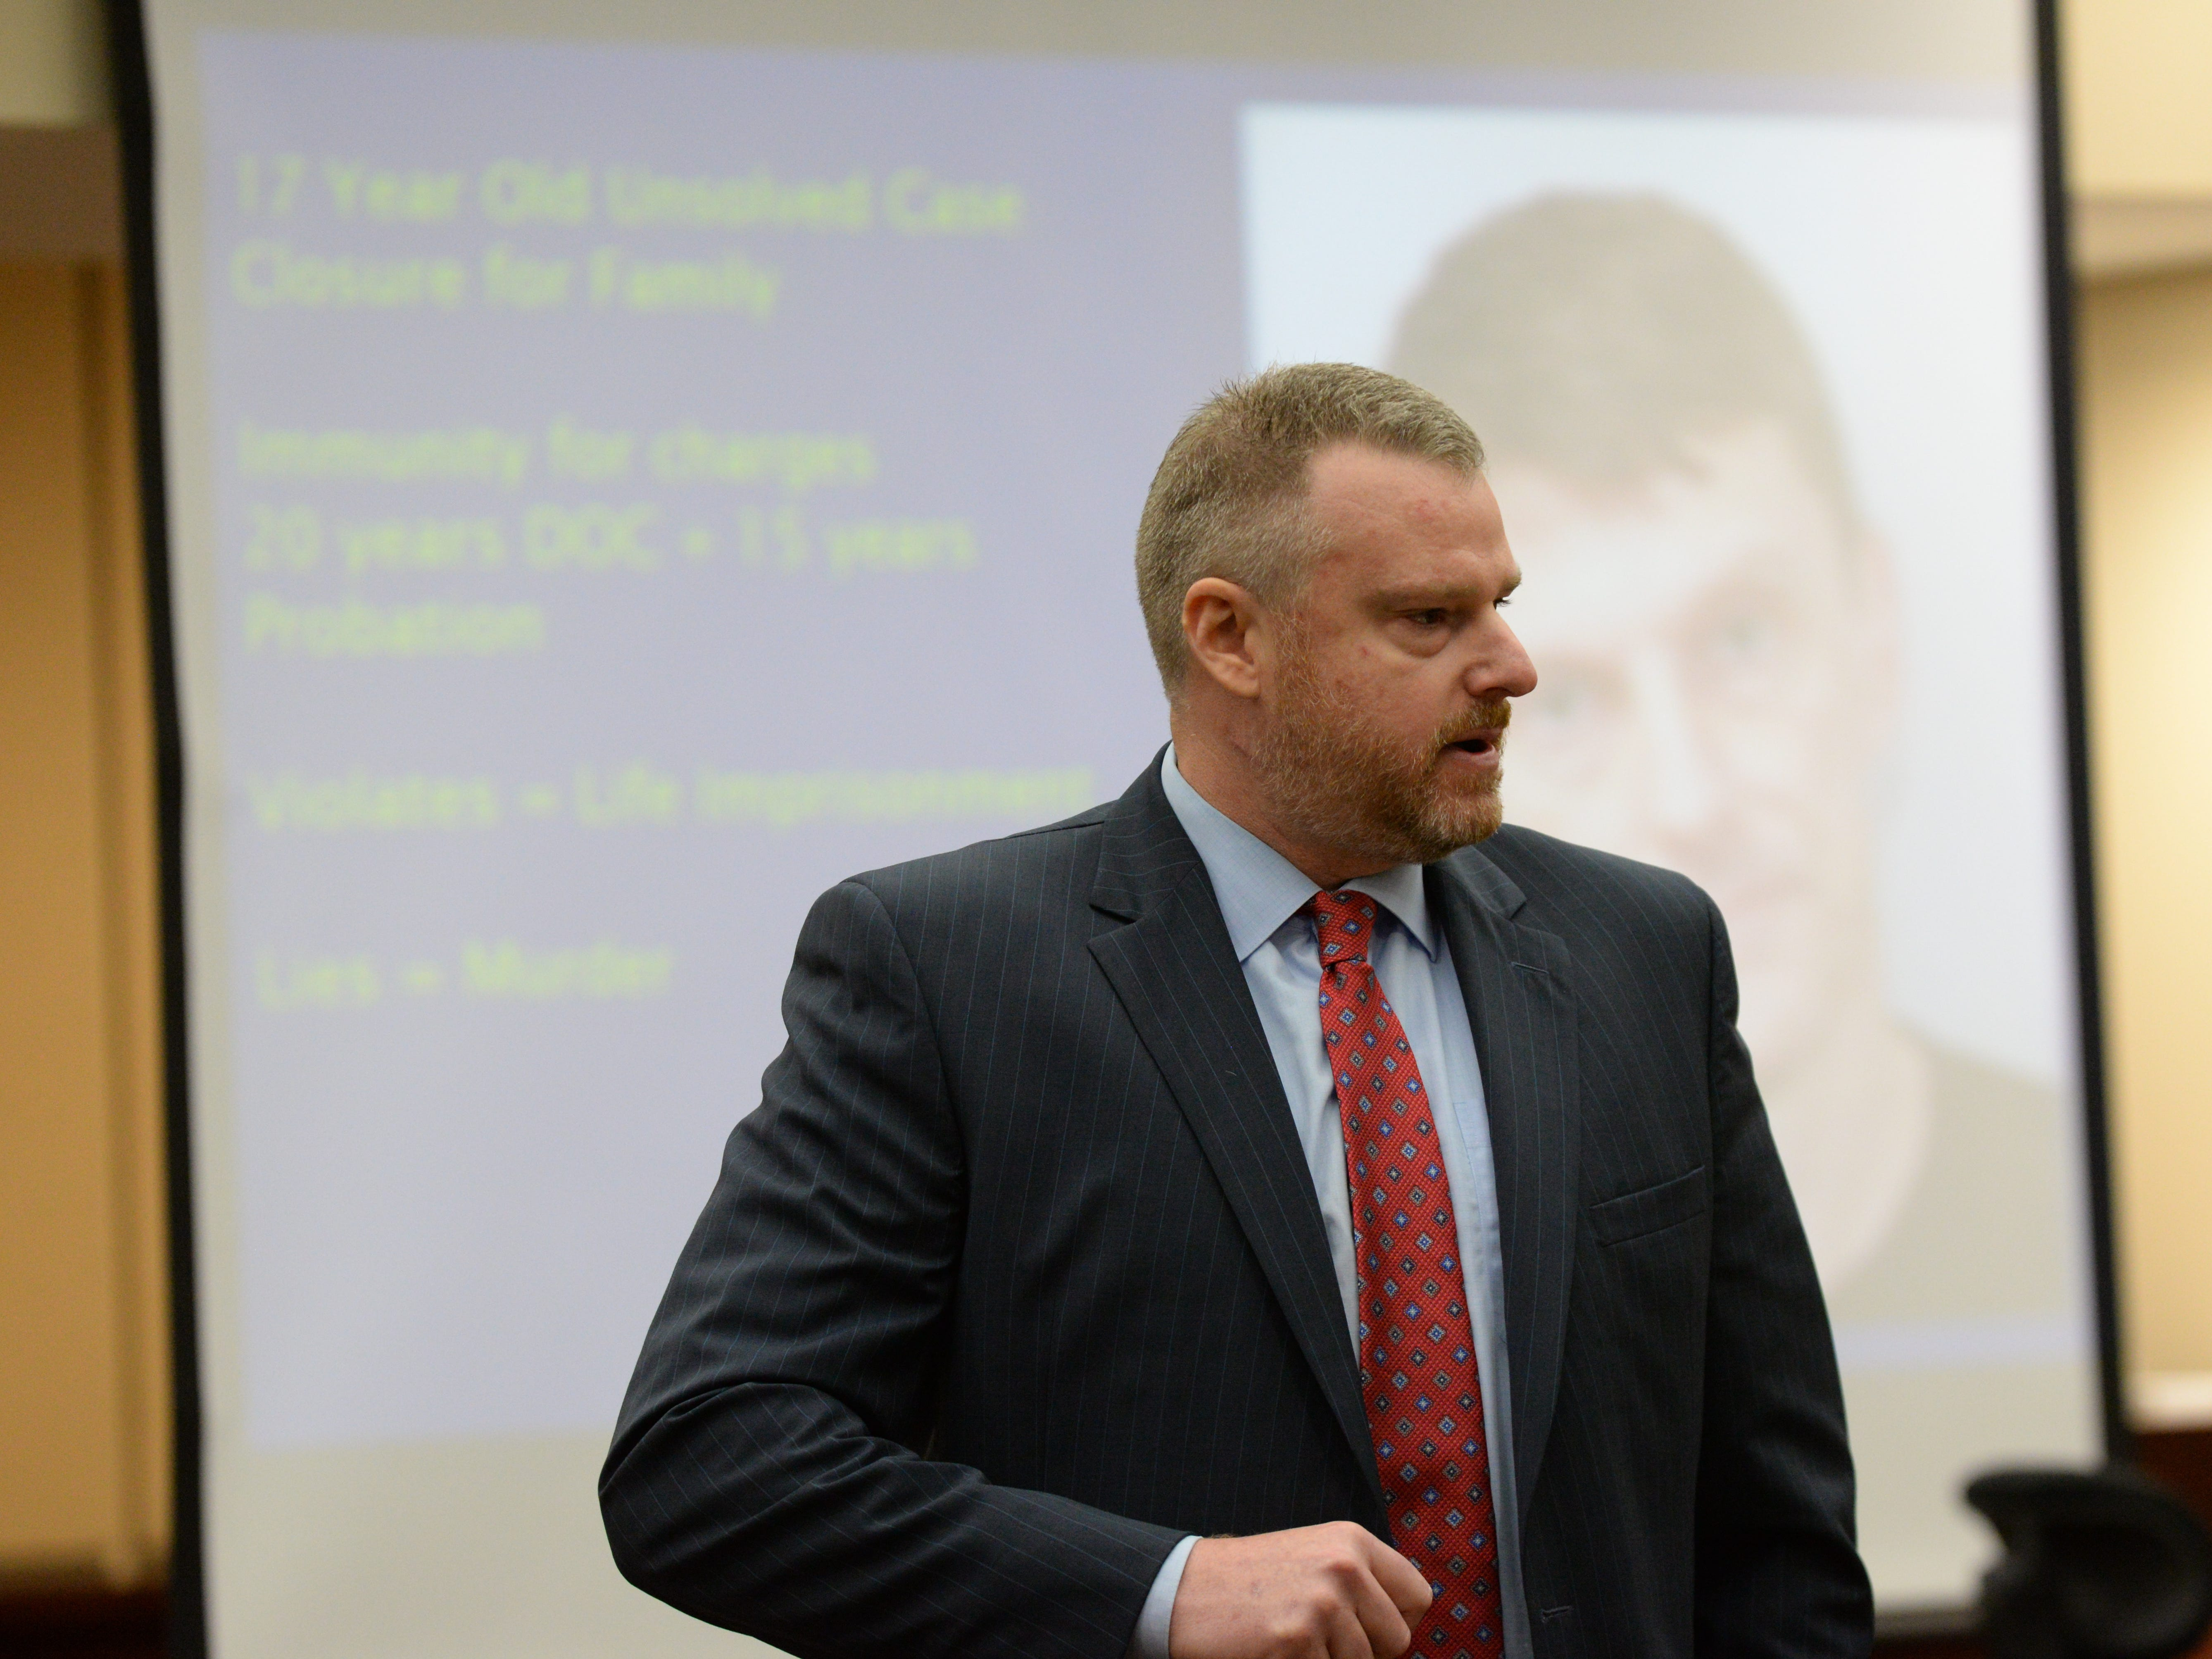 Assistant State Attorney Jon Fuchs gives his rebuttal in closing arguments during the trial of Denise Williams for the murder of her husband Mike Williams at the Leon County Courthouse Friday, Dec. 14, 2018.